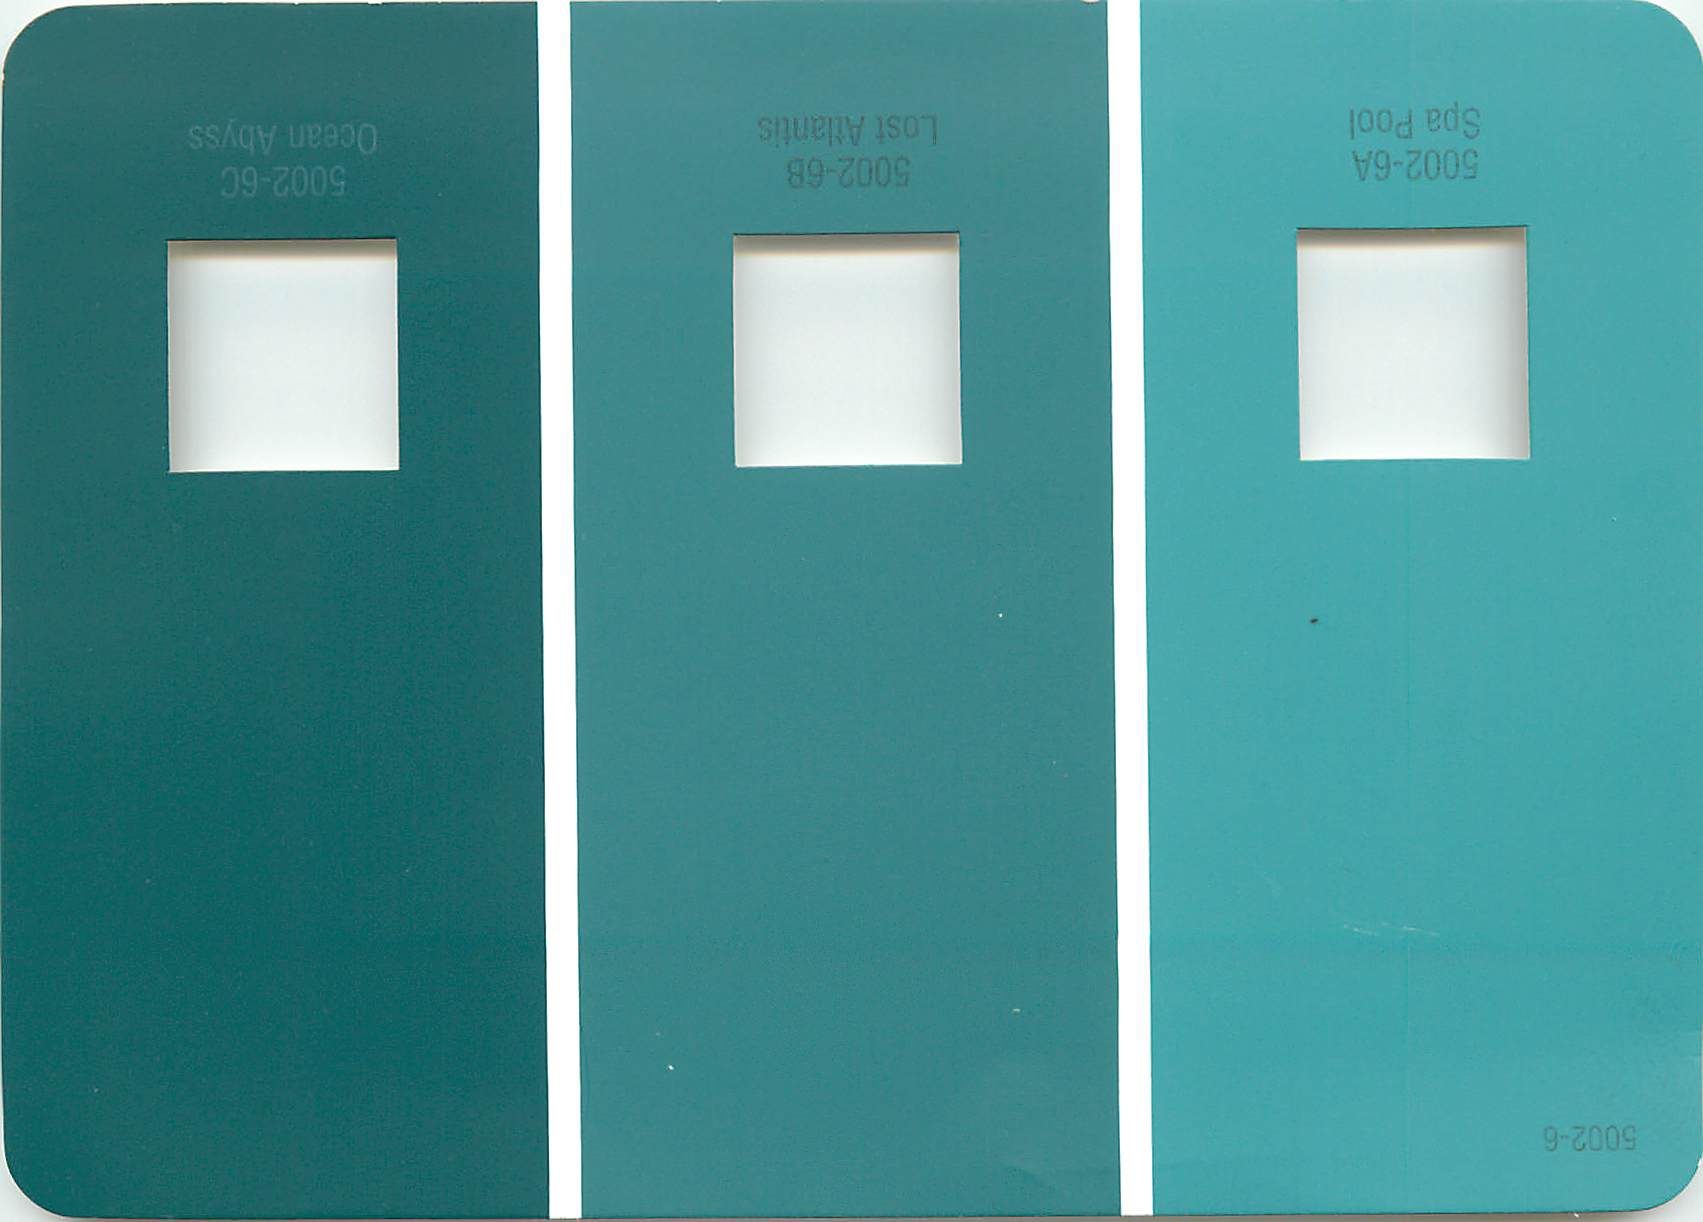 Cozy Tiffany Blue Paint Valspar Tiffany Blue Paint Color Sherwin Williams To Designing Home Tiffany Blue Paint Benjamin Moore Tiffany Blue Paint Valspar houzz 01 Tiffany Blue Paint